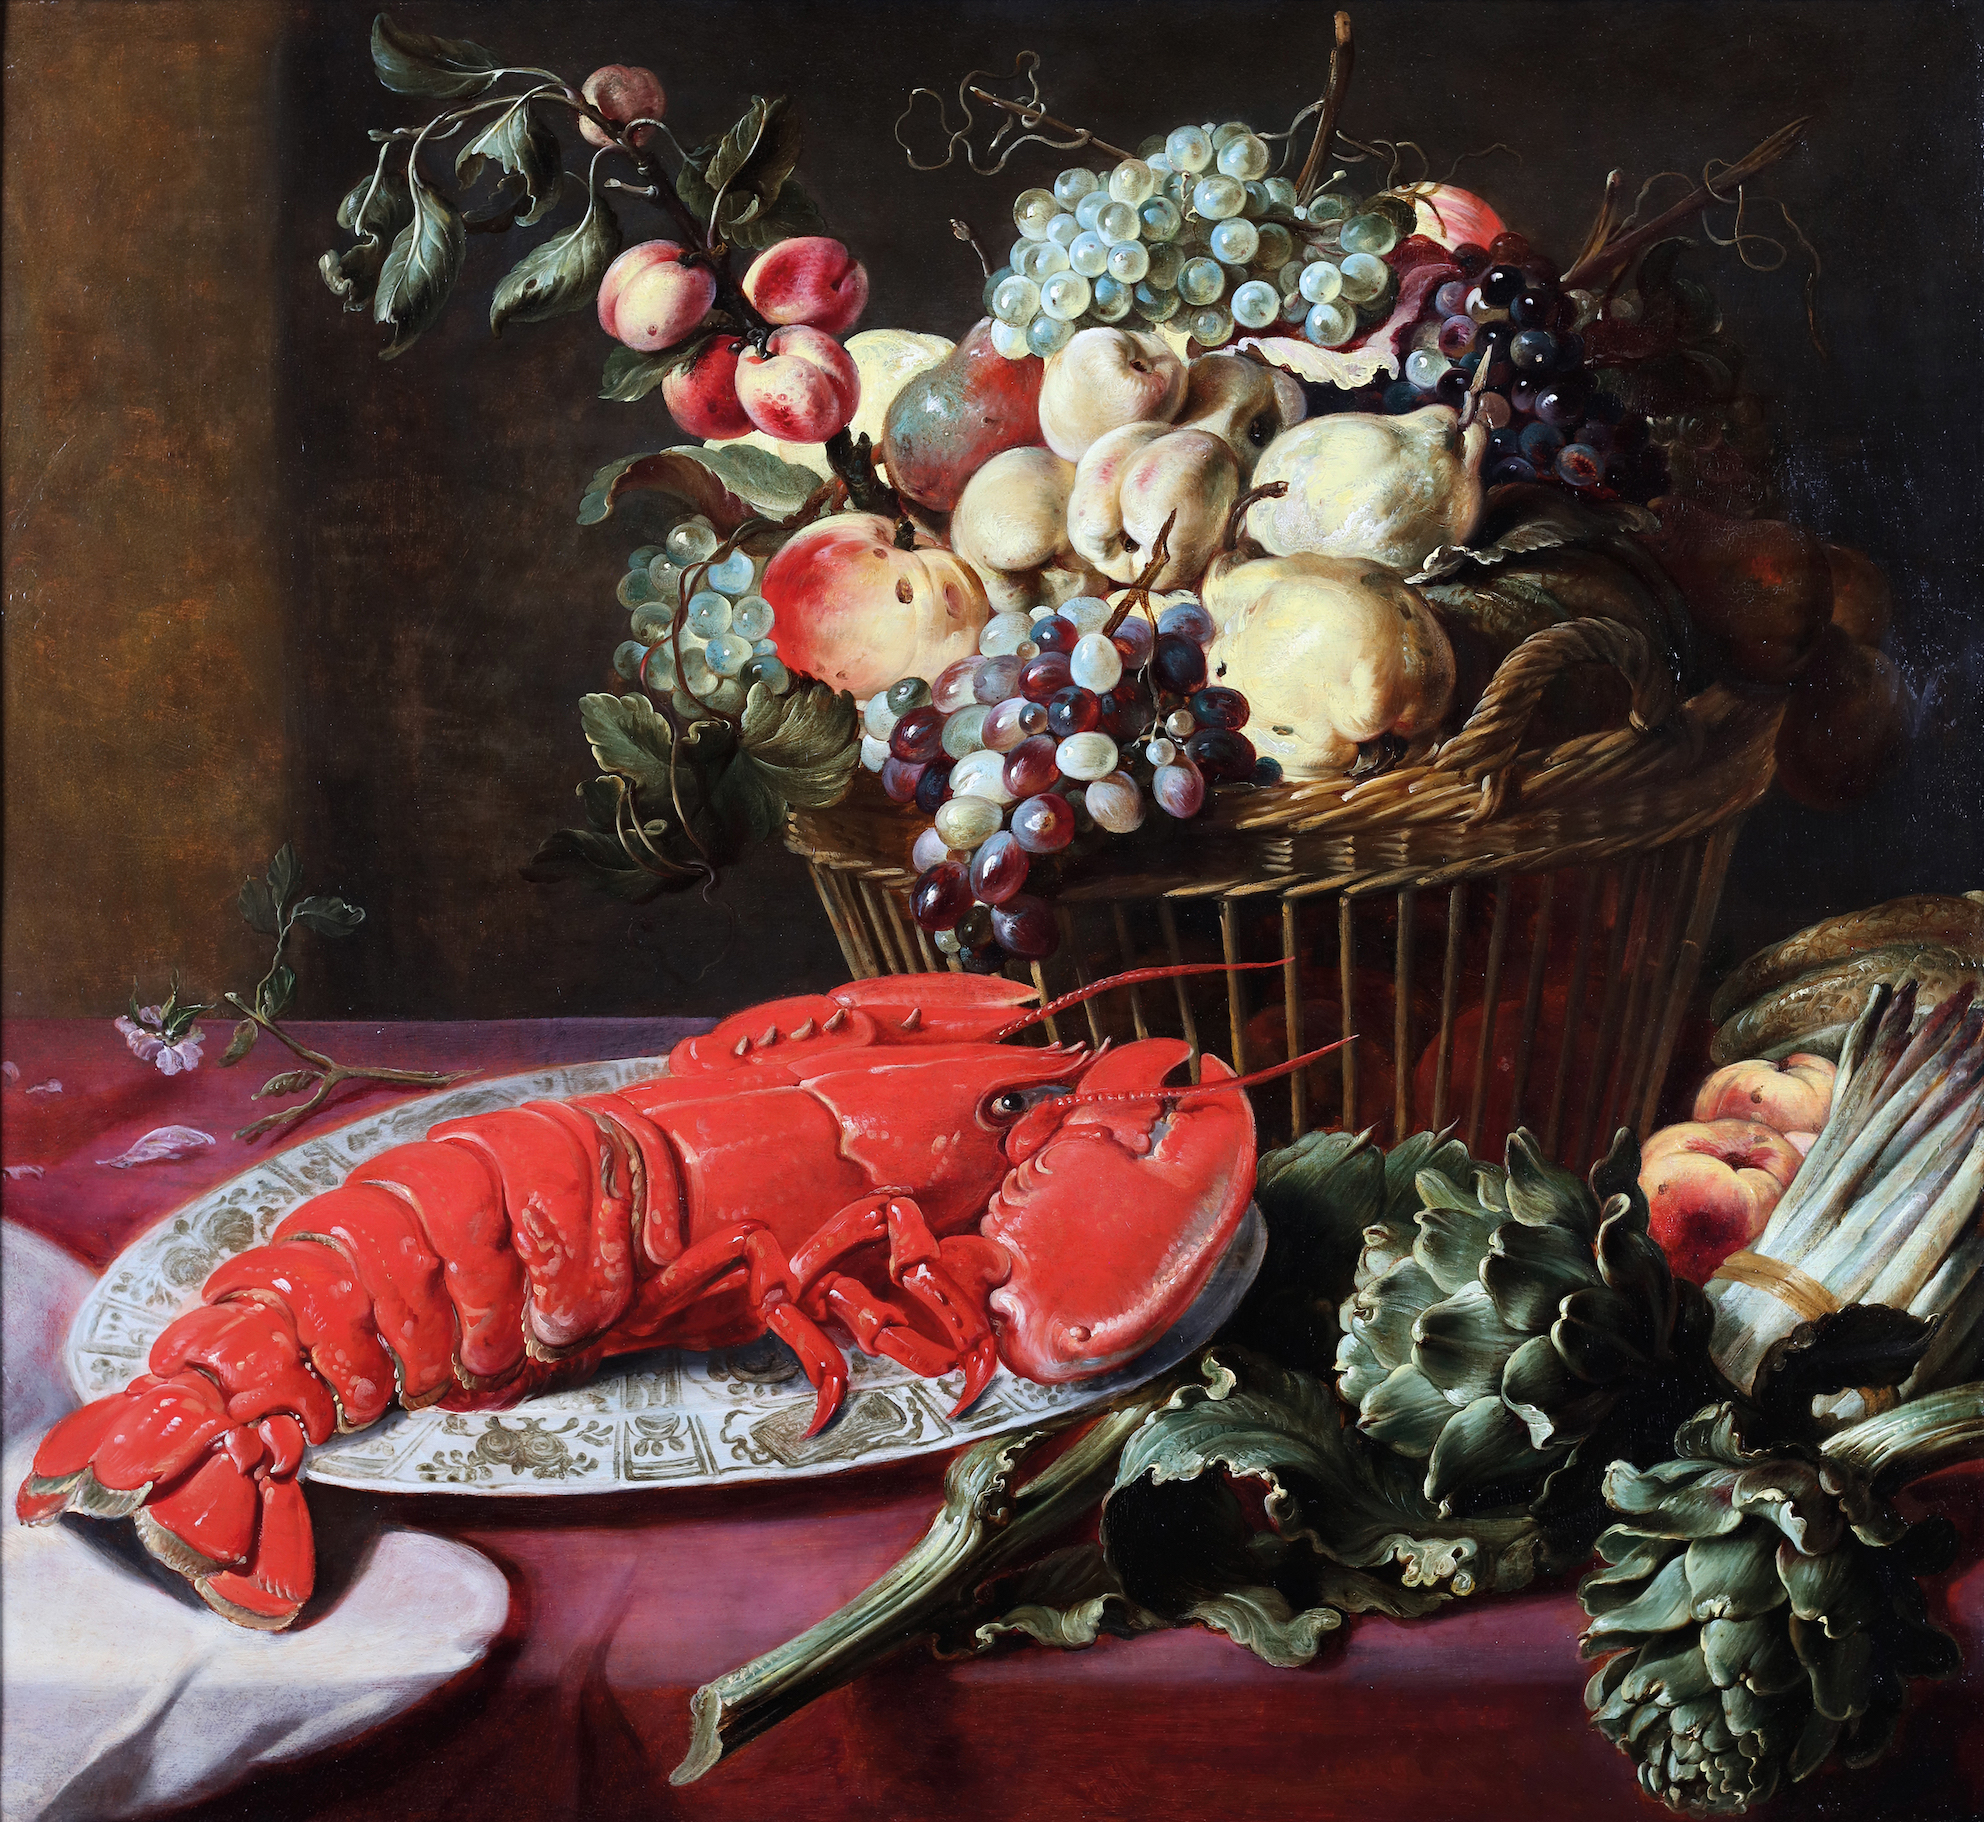 Still life with a lobster, fruits, artichokes and asparagus on a table